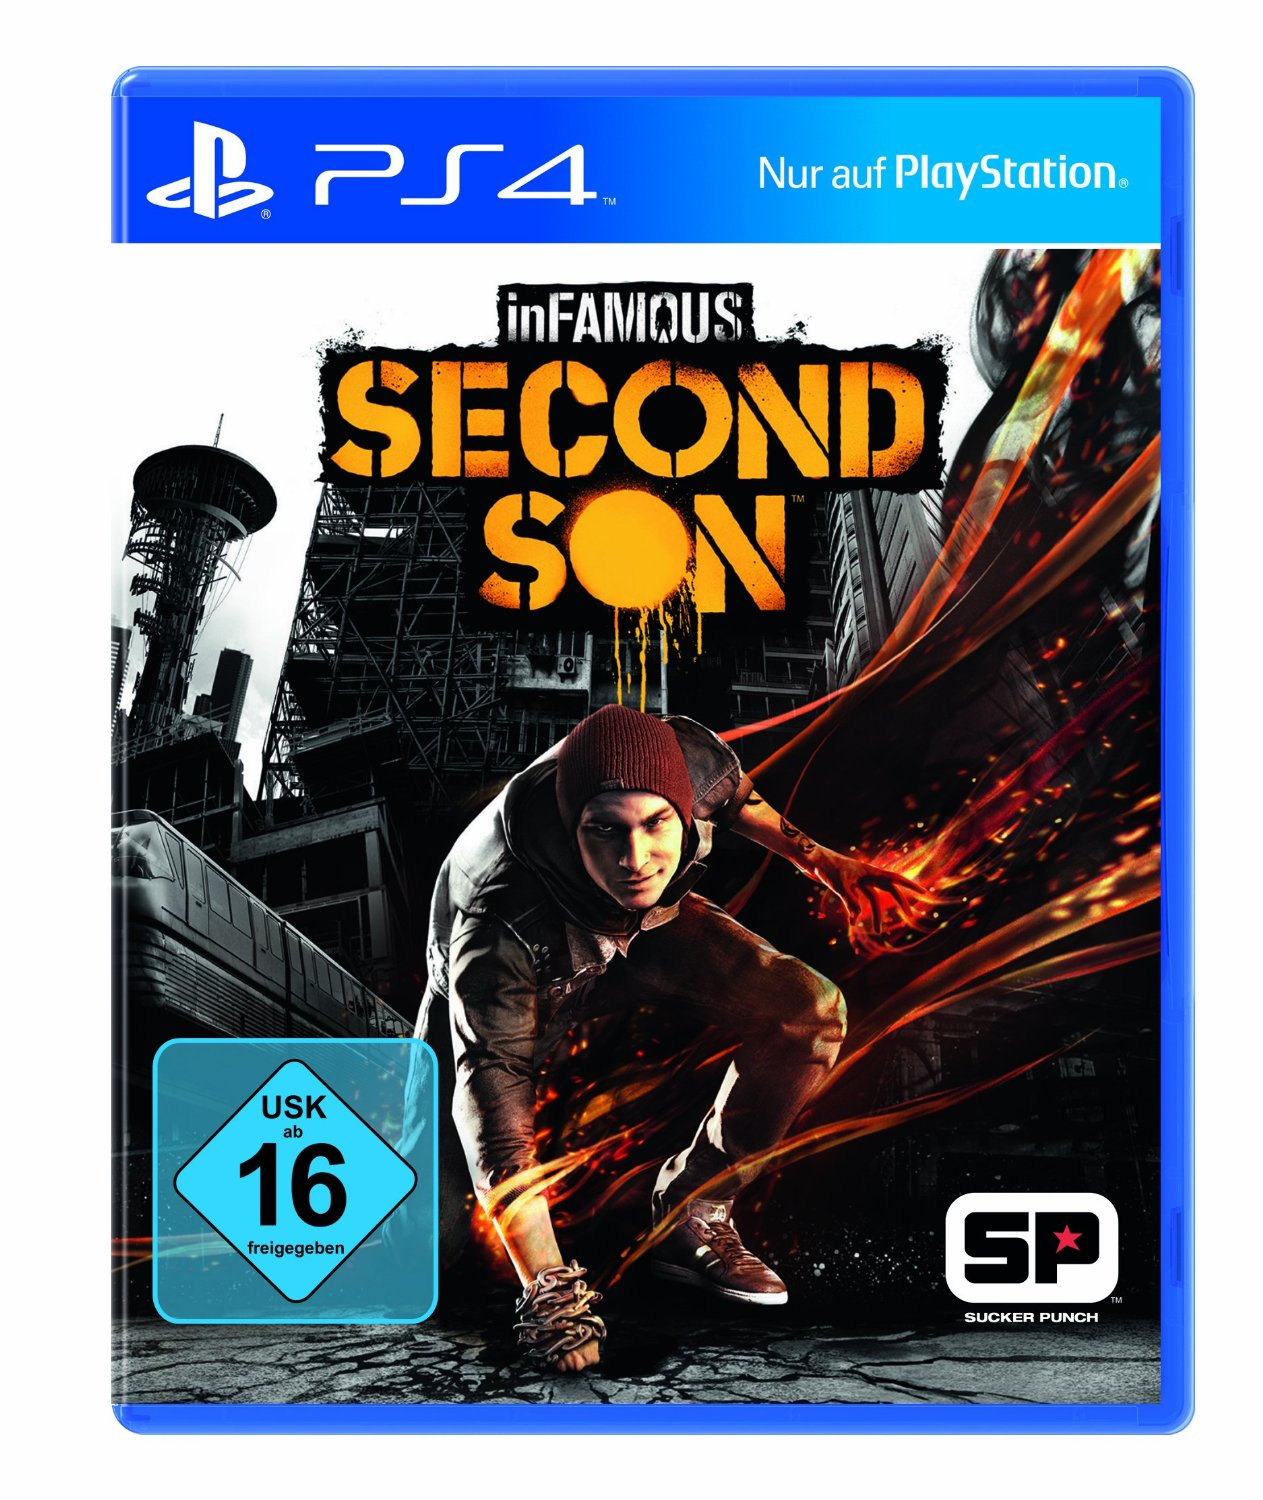 infamous second son packshot